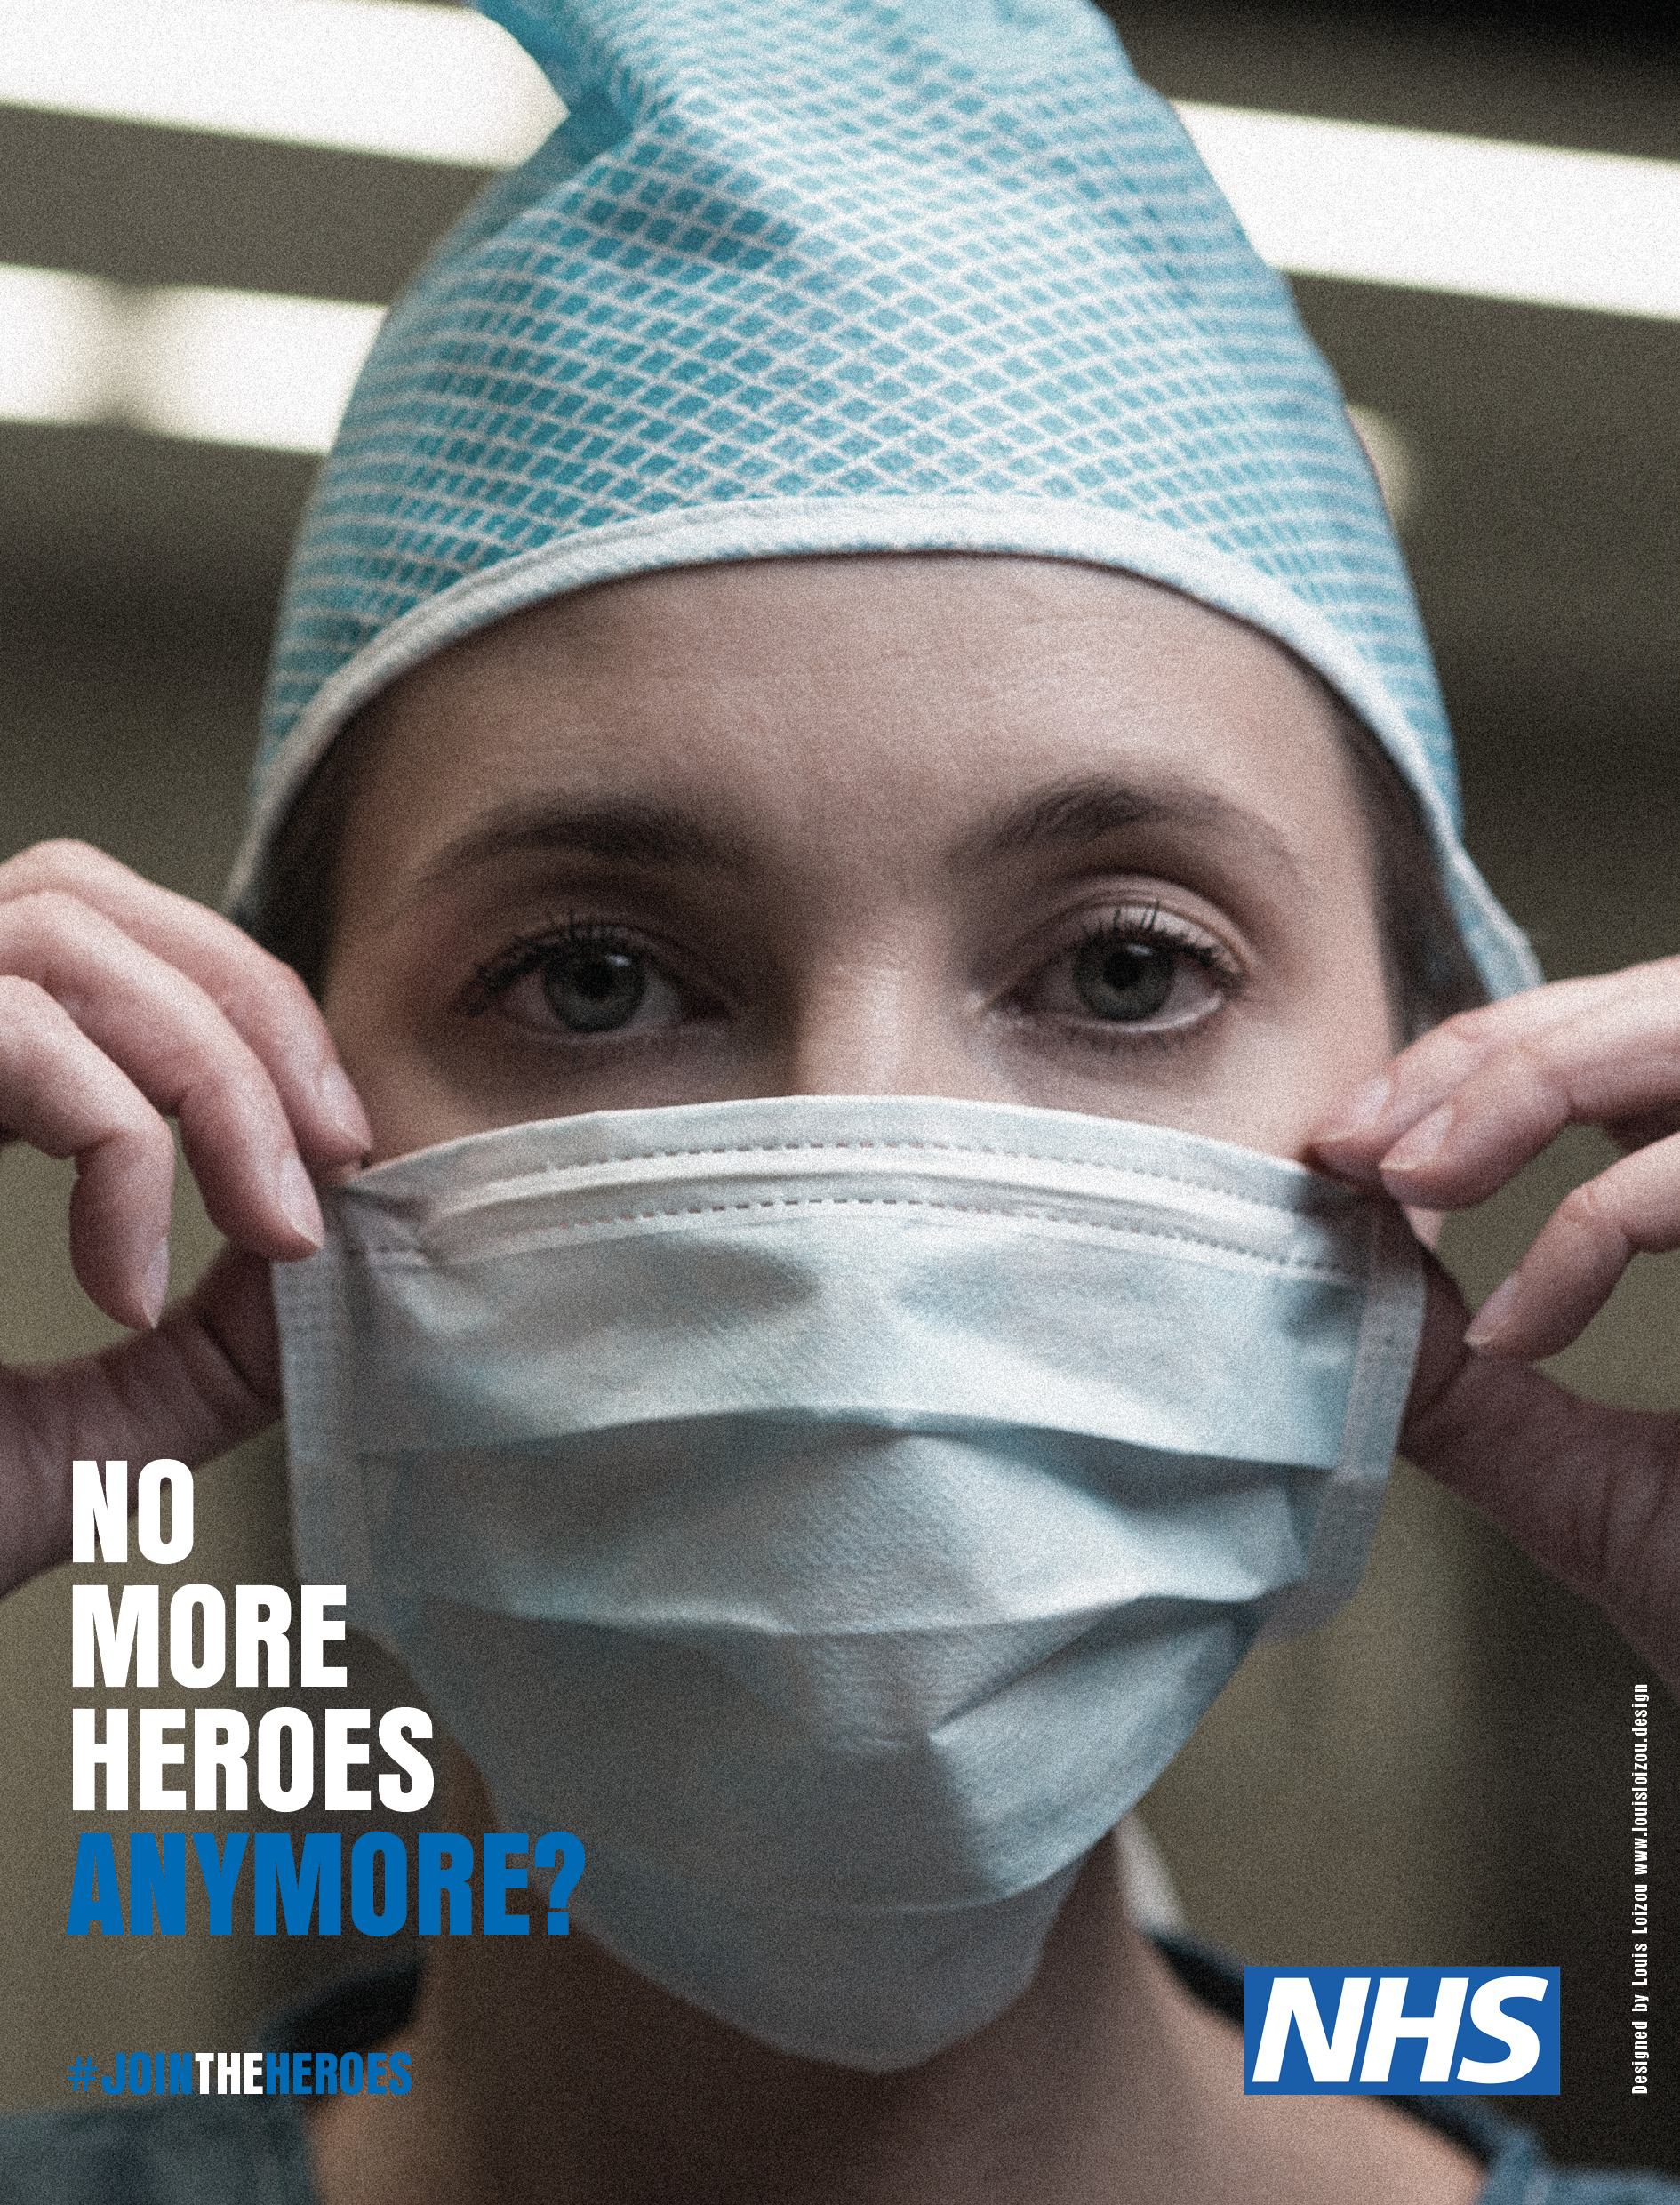 NHS_JoinTheHeroes_01-4